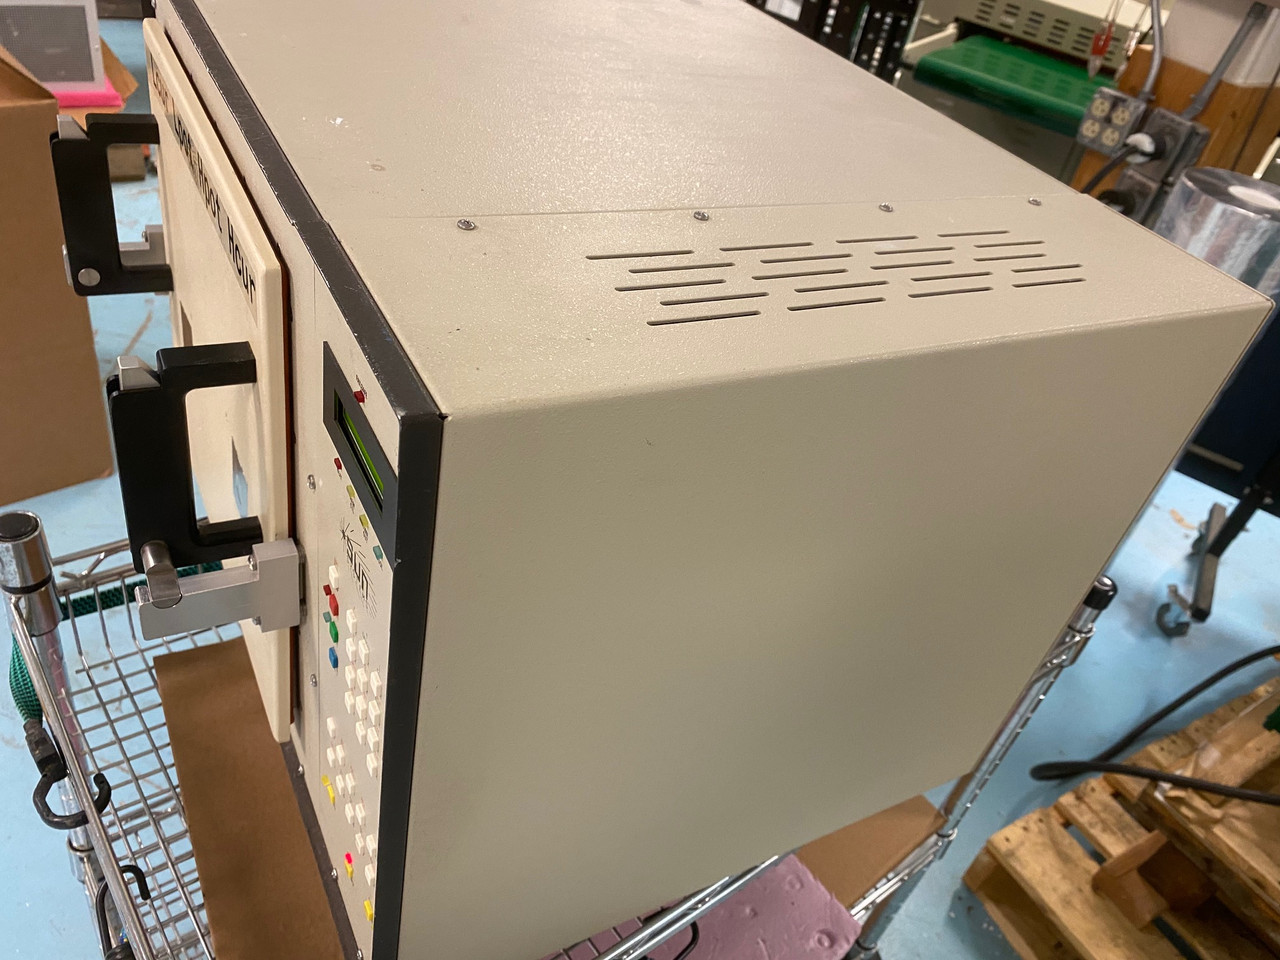 Used Sun Electronic Chamber Oven EC11, 220 V, cooling